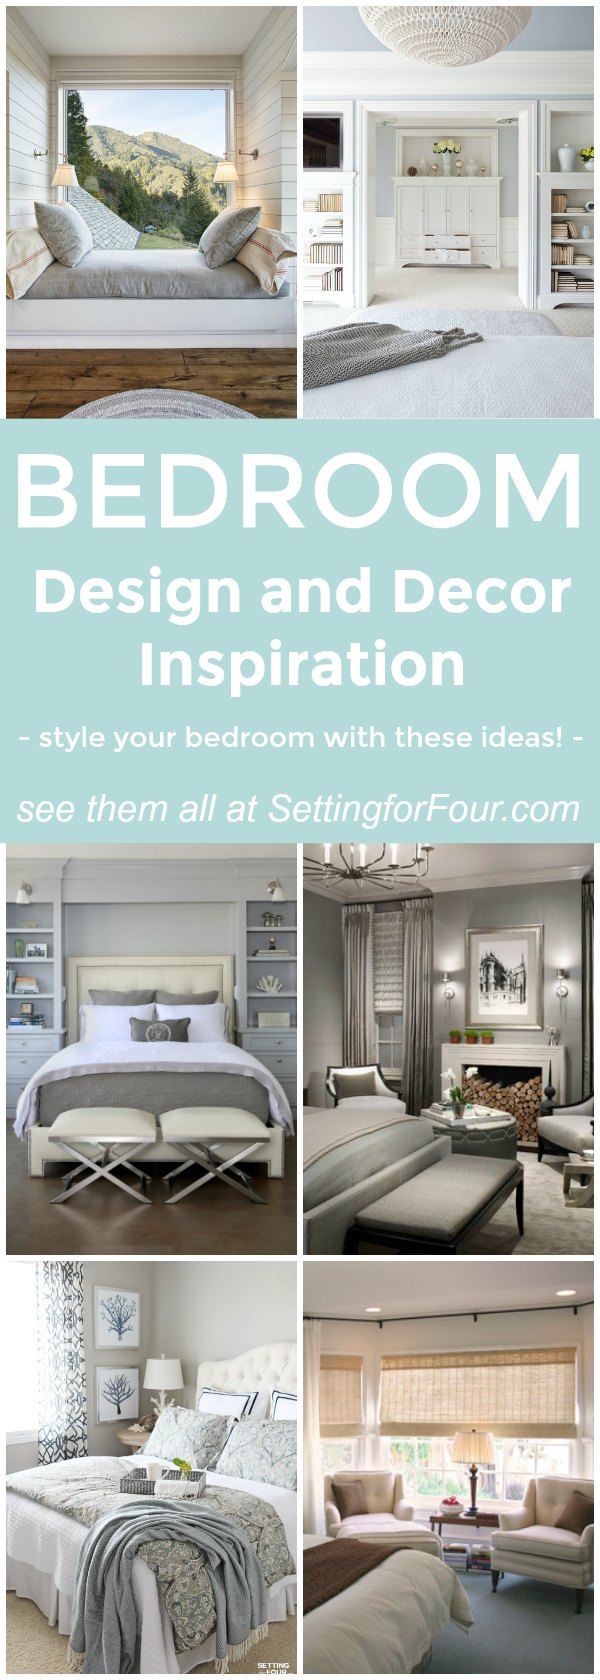 HOME DECOR IDEAS FOR YOUR BEDROOM! See these gorgeous bedroom design and decorating ideas to add to your own master bedroom and guest bedroom! Use these inspirational ideas to turn your room into a dreamy relaxing oasis!